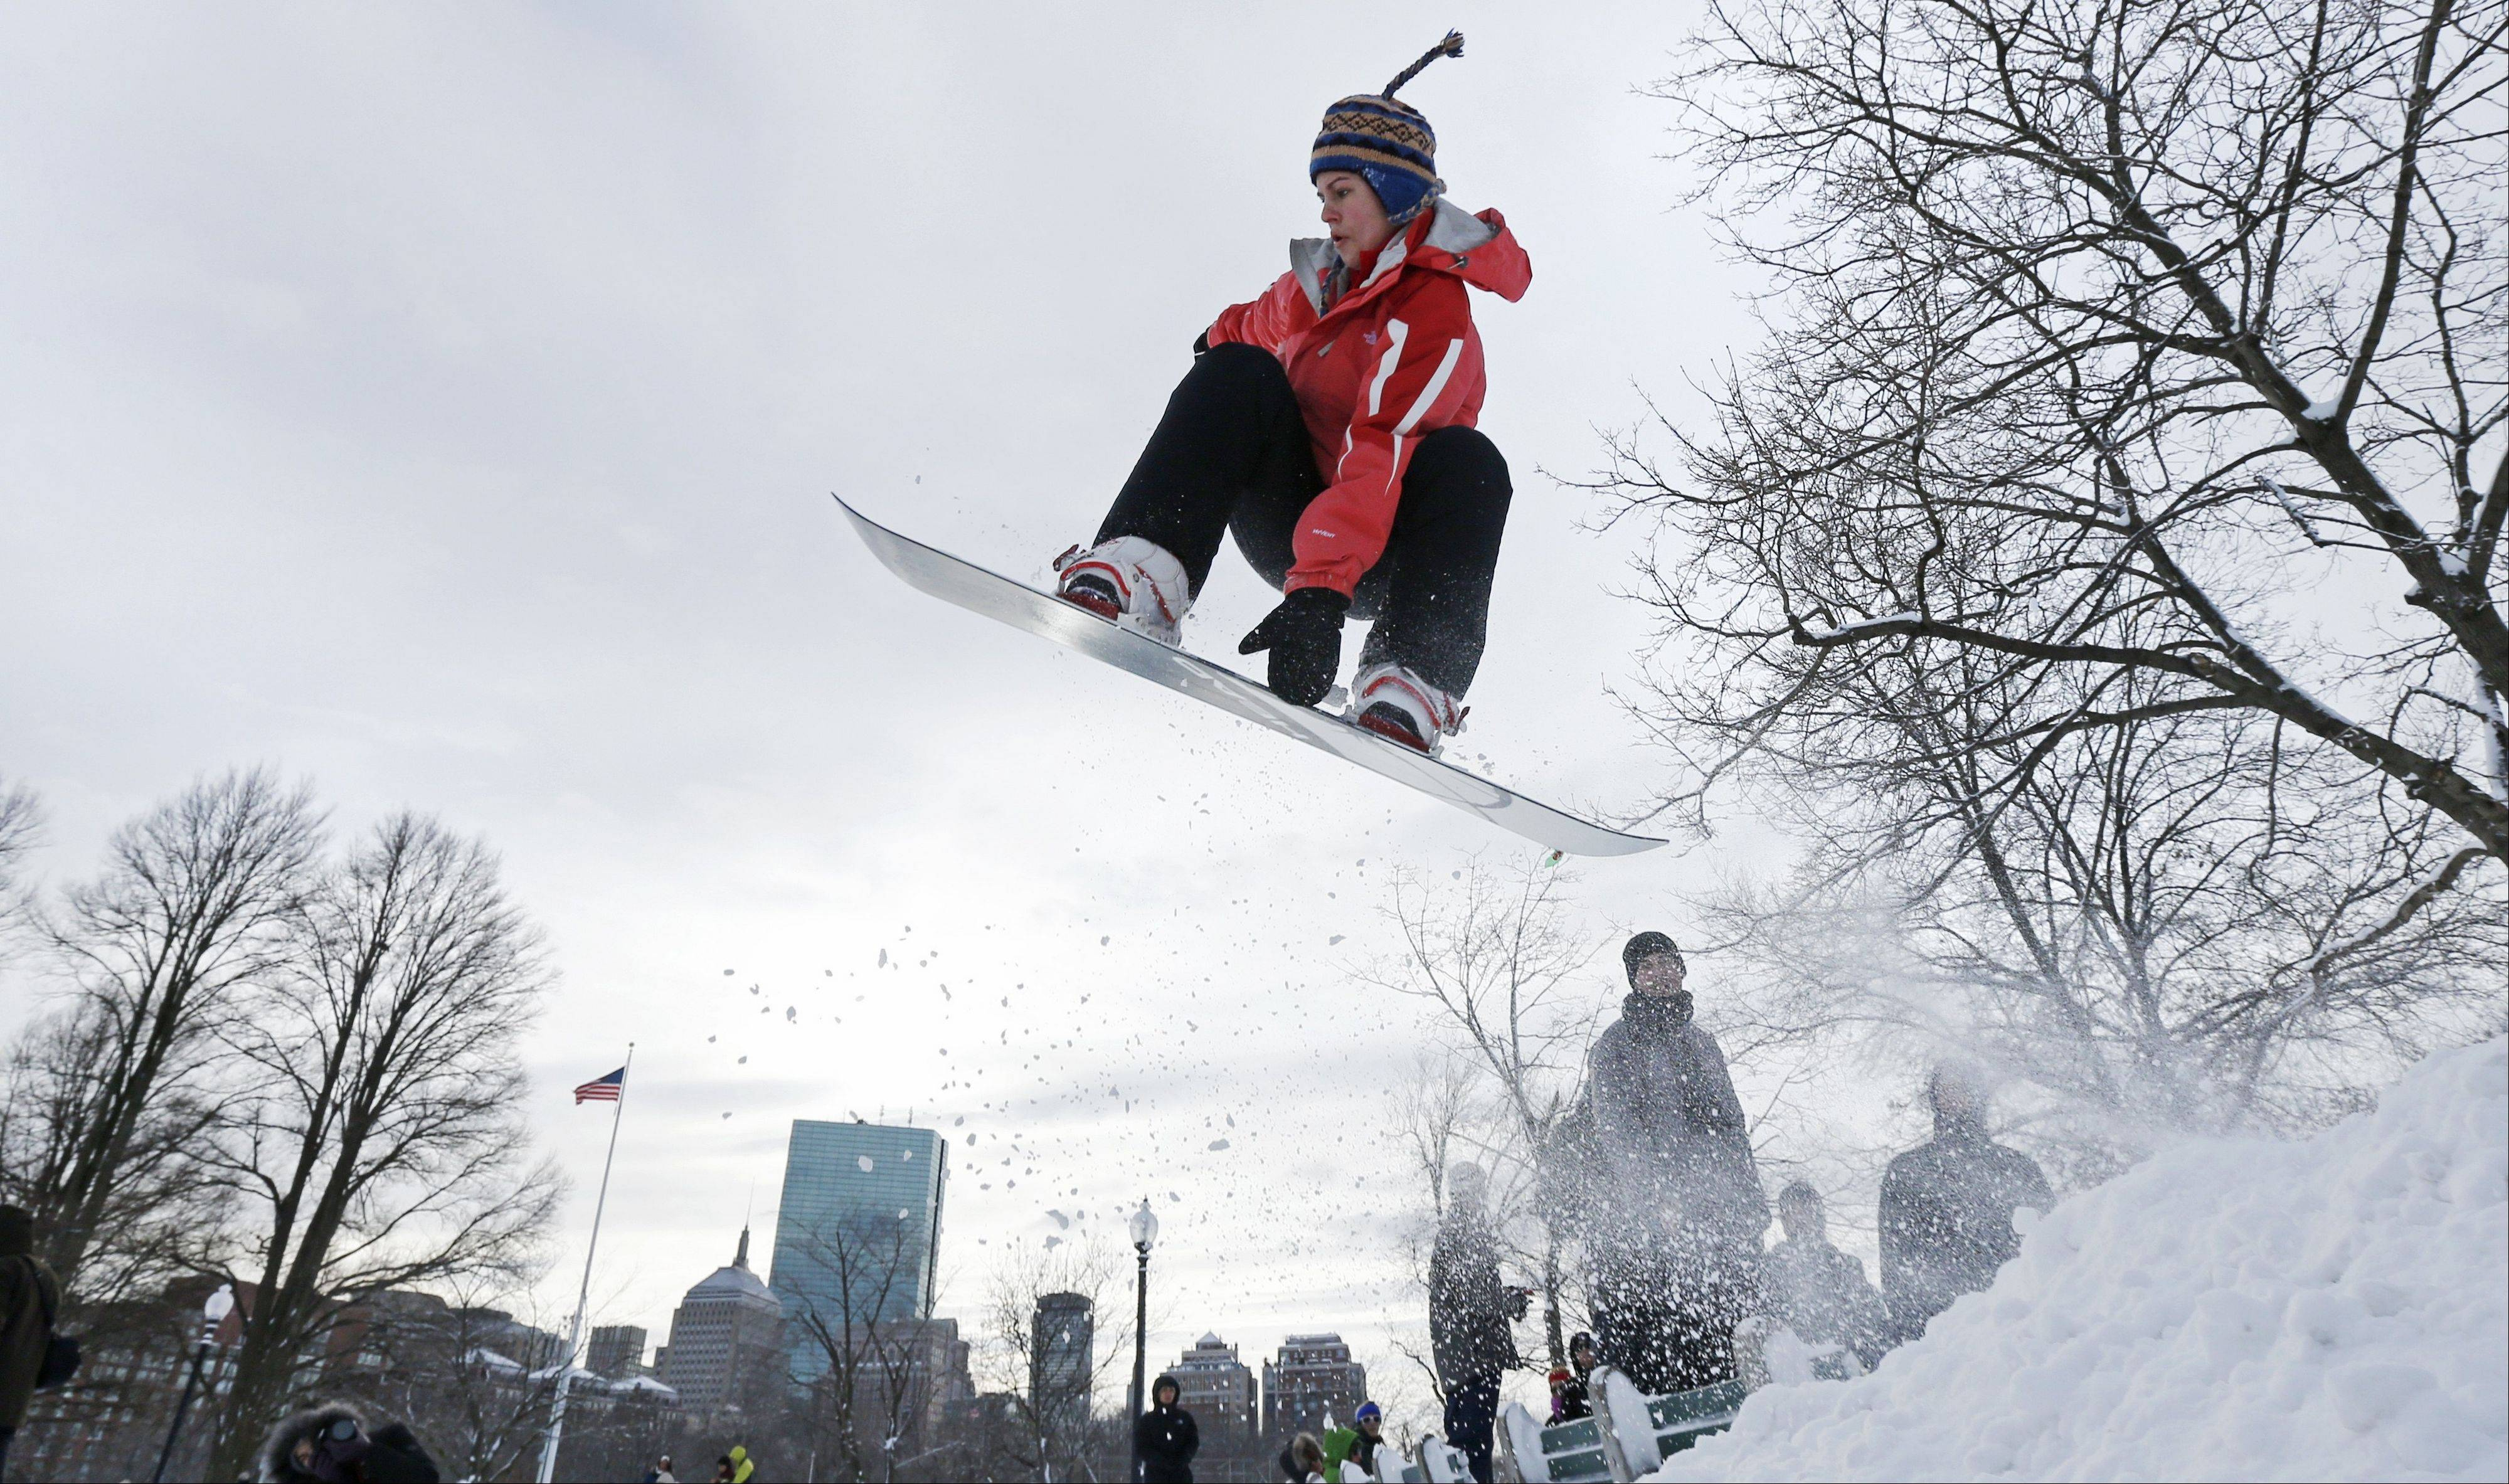 A snowboarder catches some air while taking advantage of a makeshift terrain park on Boston Common in Boston, Saturday. The Boston area received about two feet of snow from a winter storm.